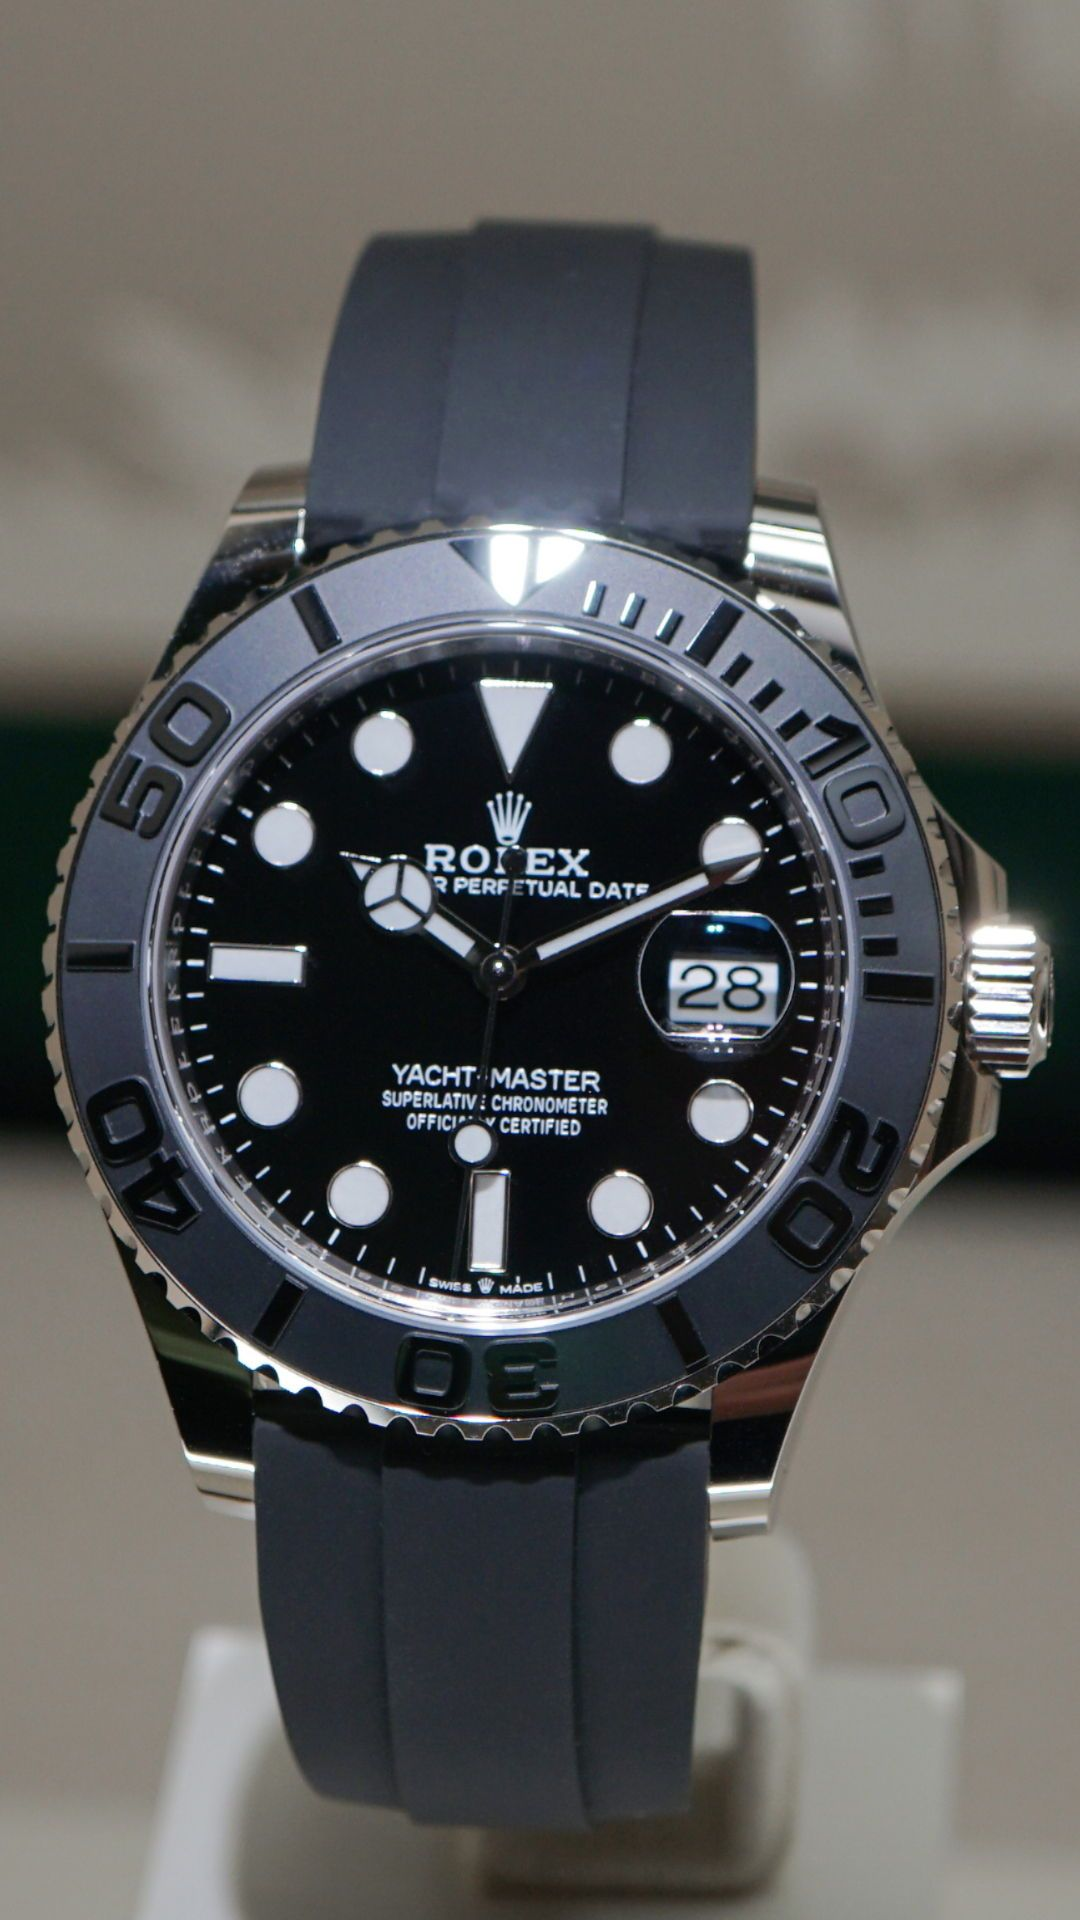 Rolex Really Surprised Us With This Big Beauty What Do You Think Watchfam Of The New Yacht Master 42 Rolex Watches Rolex Watches For Men Luxury Watches